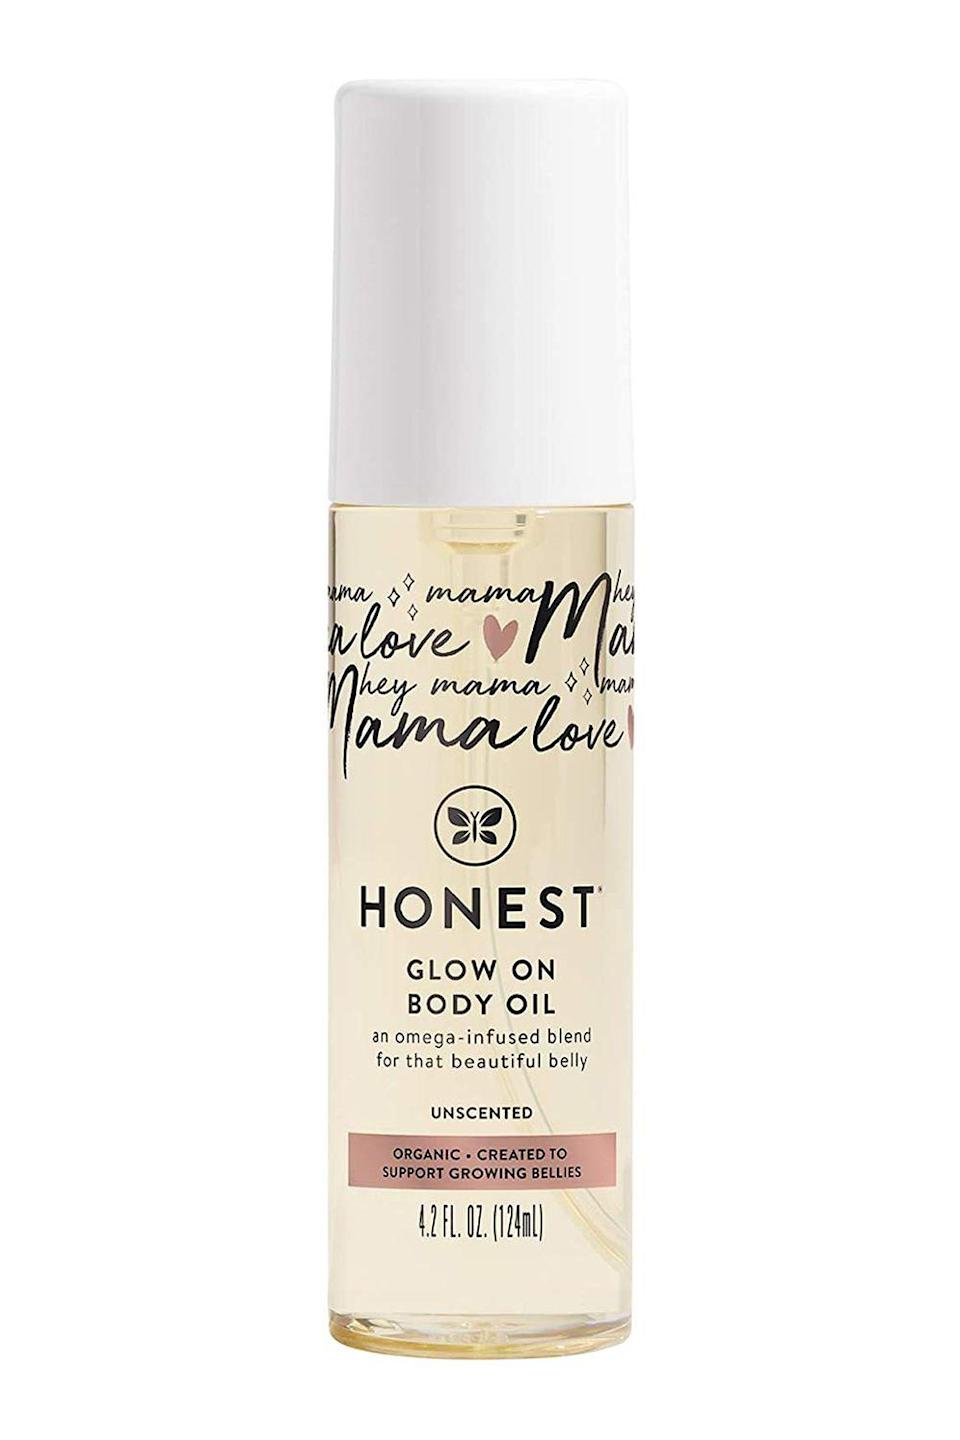 "<p><strong>The Honest Company</strong></p><p>amazon.com</p><p><strong>$17.99</strong></p><p><a href=""https://www.amazon.com/dp/B08PY537DK?tag=syn-yahoo-20&ascsubtag=%5Bartid%7C10072.g.26787035%5Bsrc%7Cyahoo-us"" rel=""nofollow noopener"" target=""_blank"" data-ylk=""slk:Shop Now"" class=""link rapid-noclick-resp"">Shop Now</a></p><p>Just because she doesn't have time for an intensive beauty routine, doesn't mean she doesn't want smooth, soft, and glowing skin. This brilliant body oil is formulated with a mighty mix of moisturizing avocado, coconut, and jojoba seed oils—not to mention that it takes just seconds to apply.<br></p>"